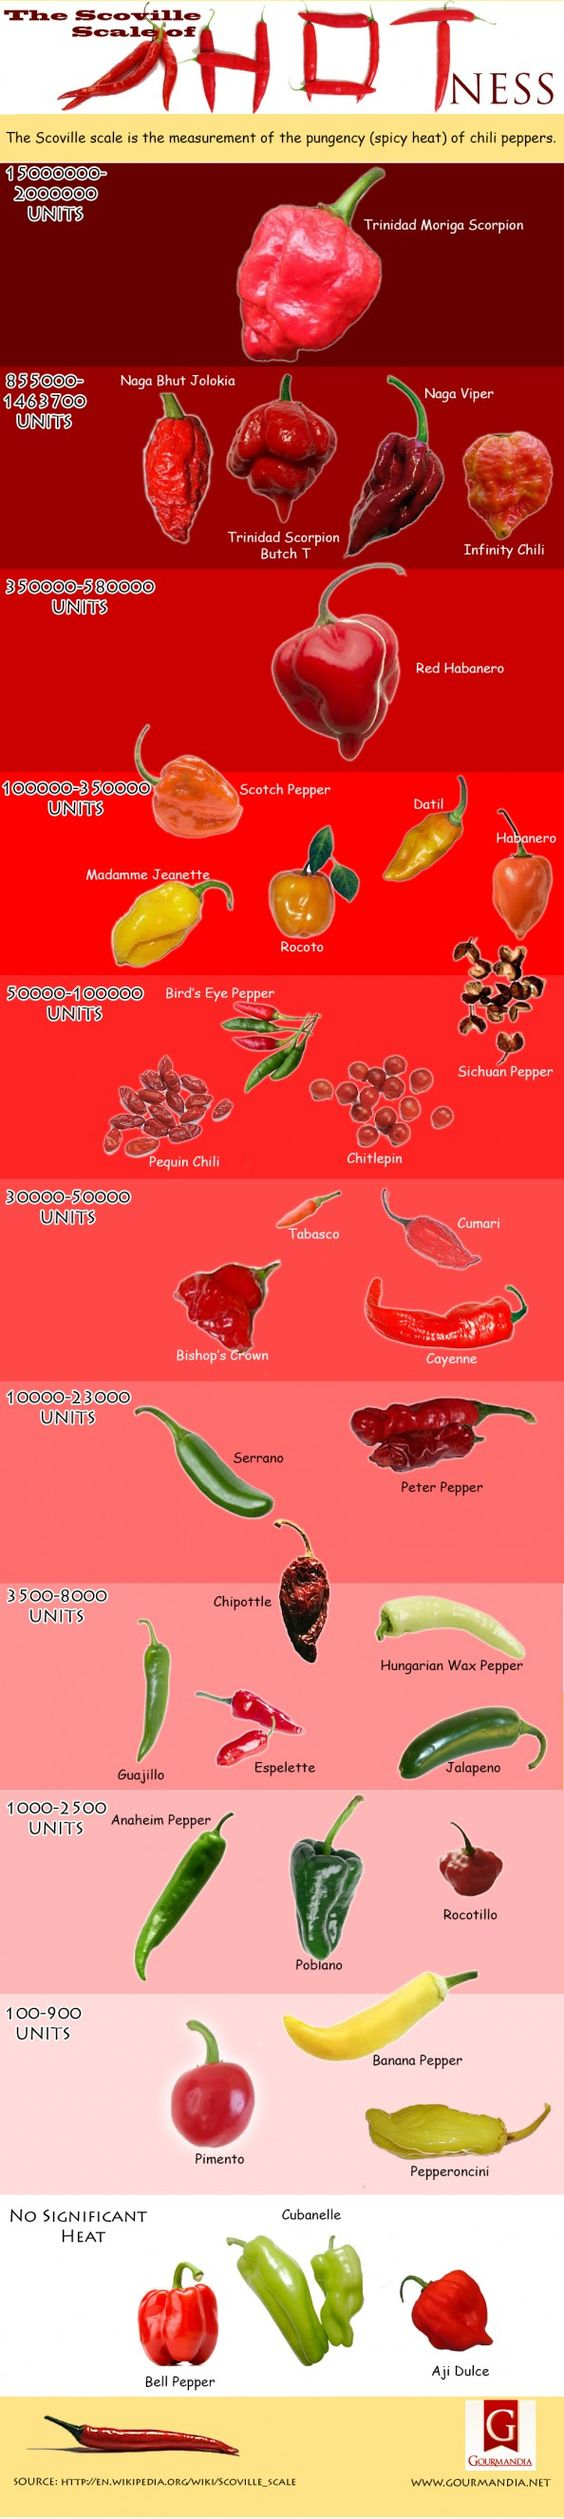 the scoville scale of hotness chili peppers food facts pinterest chili and the o 39 jays. Black Bedroom Furniture Sets. Home Design Ideas